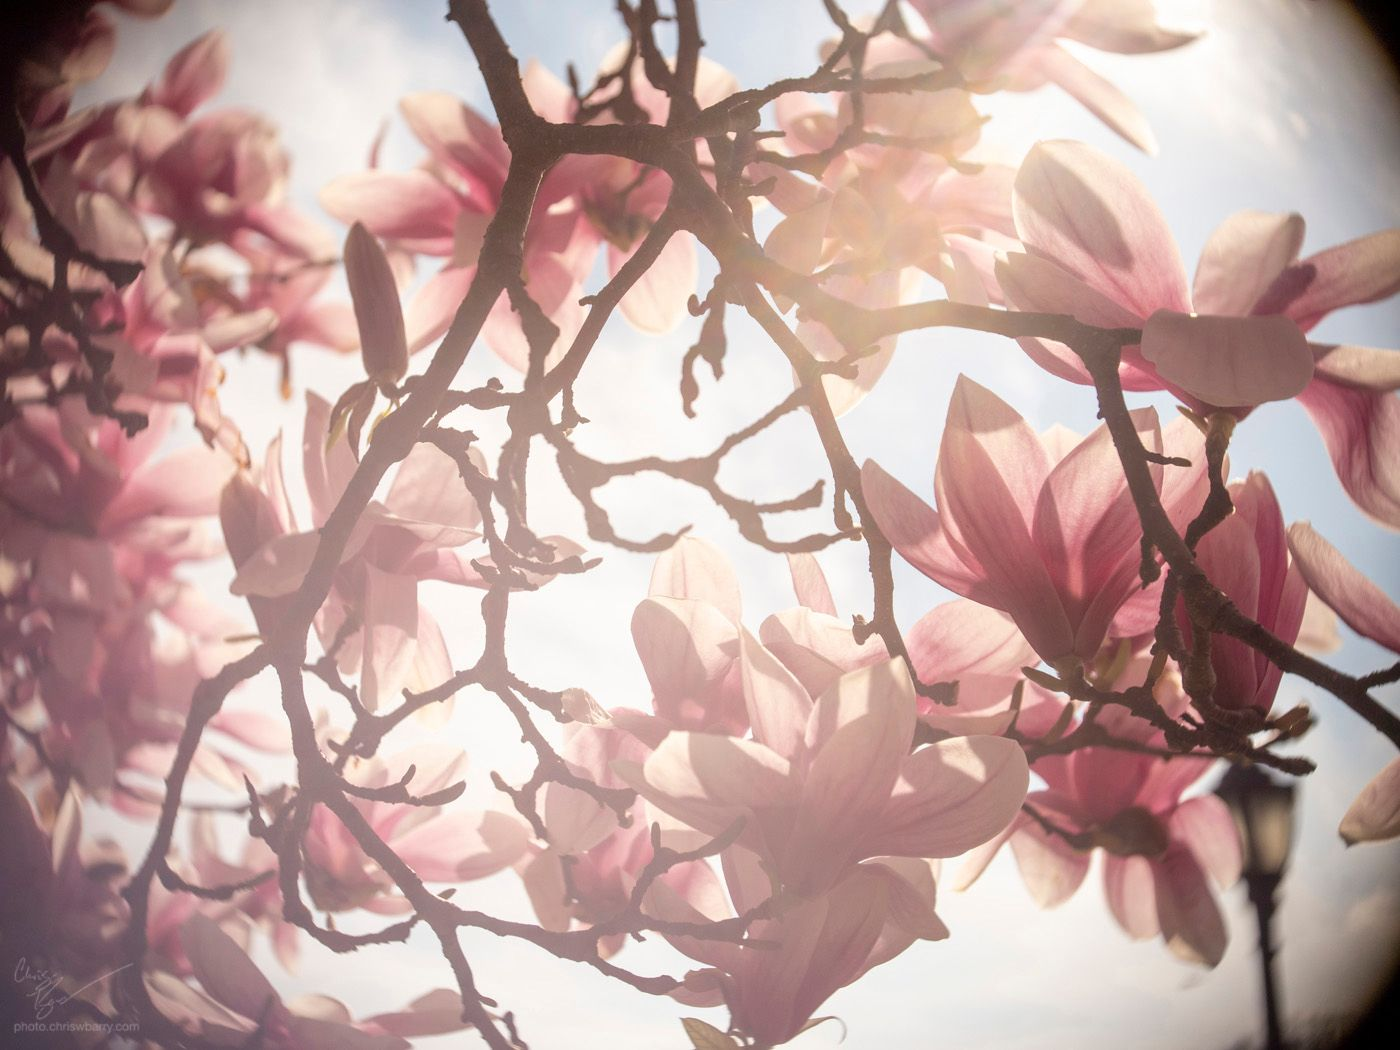 4-13-19: This is just all Magnolias